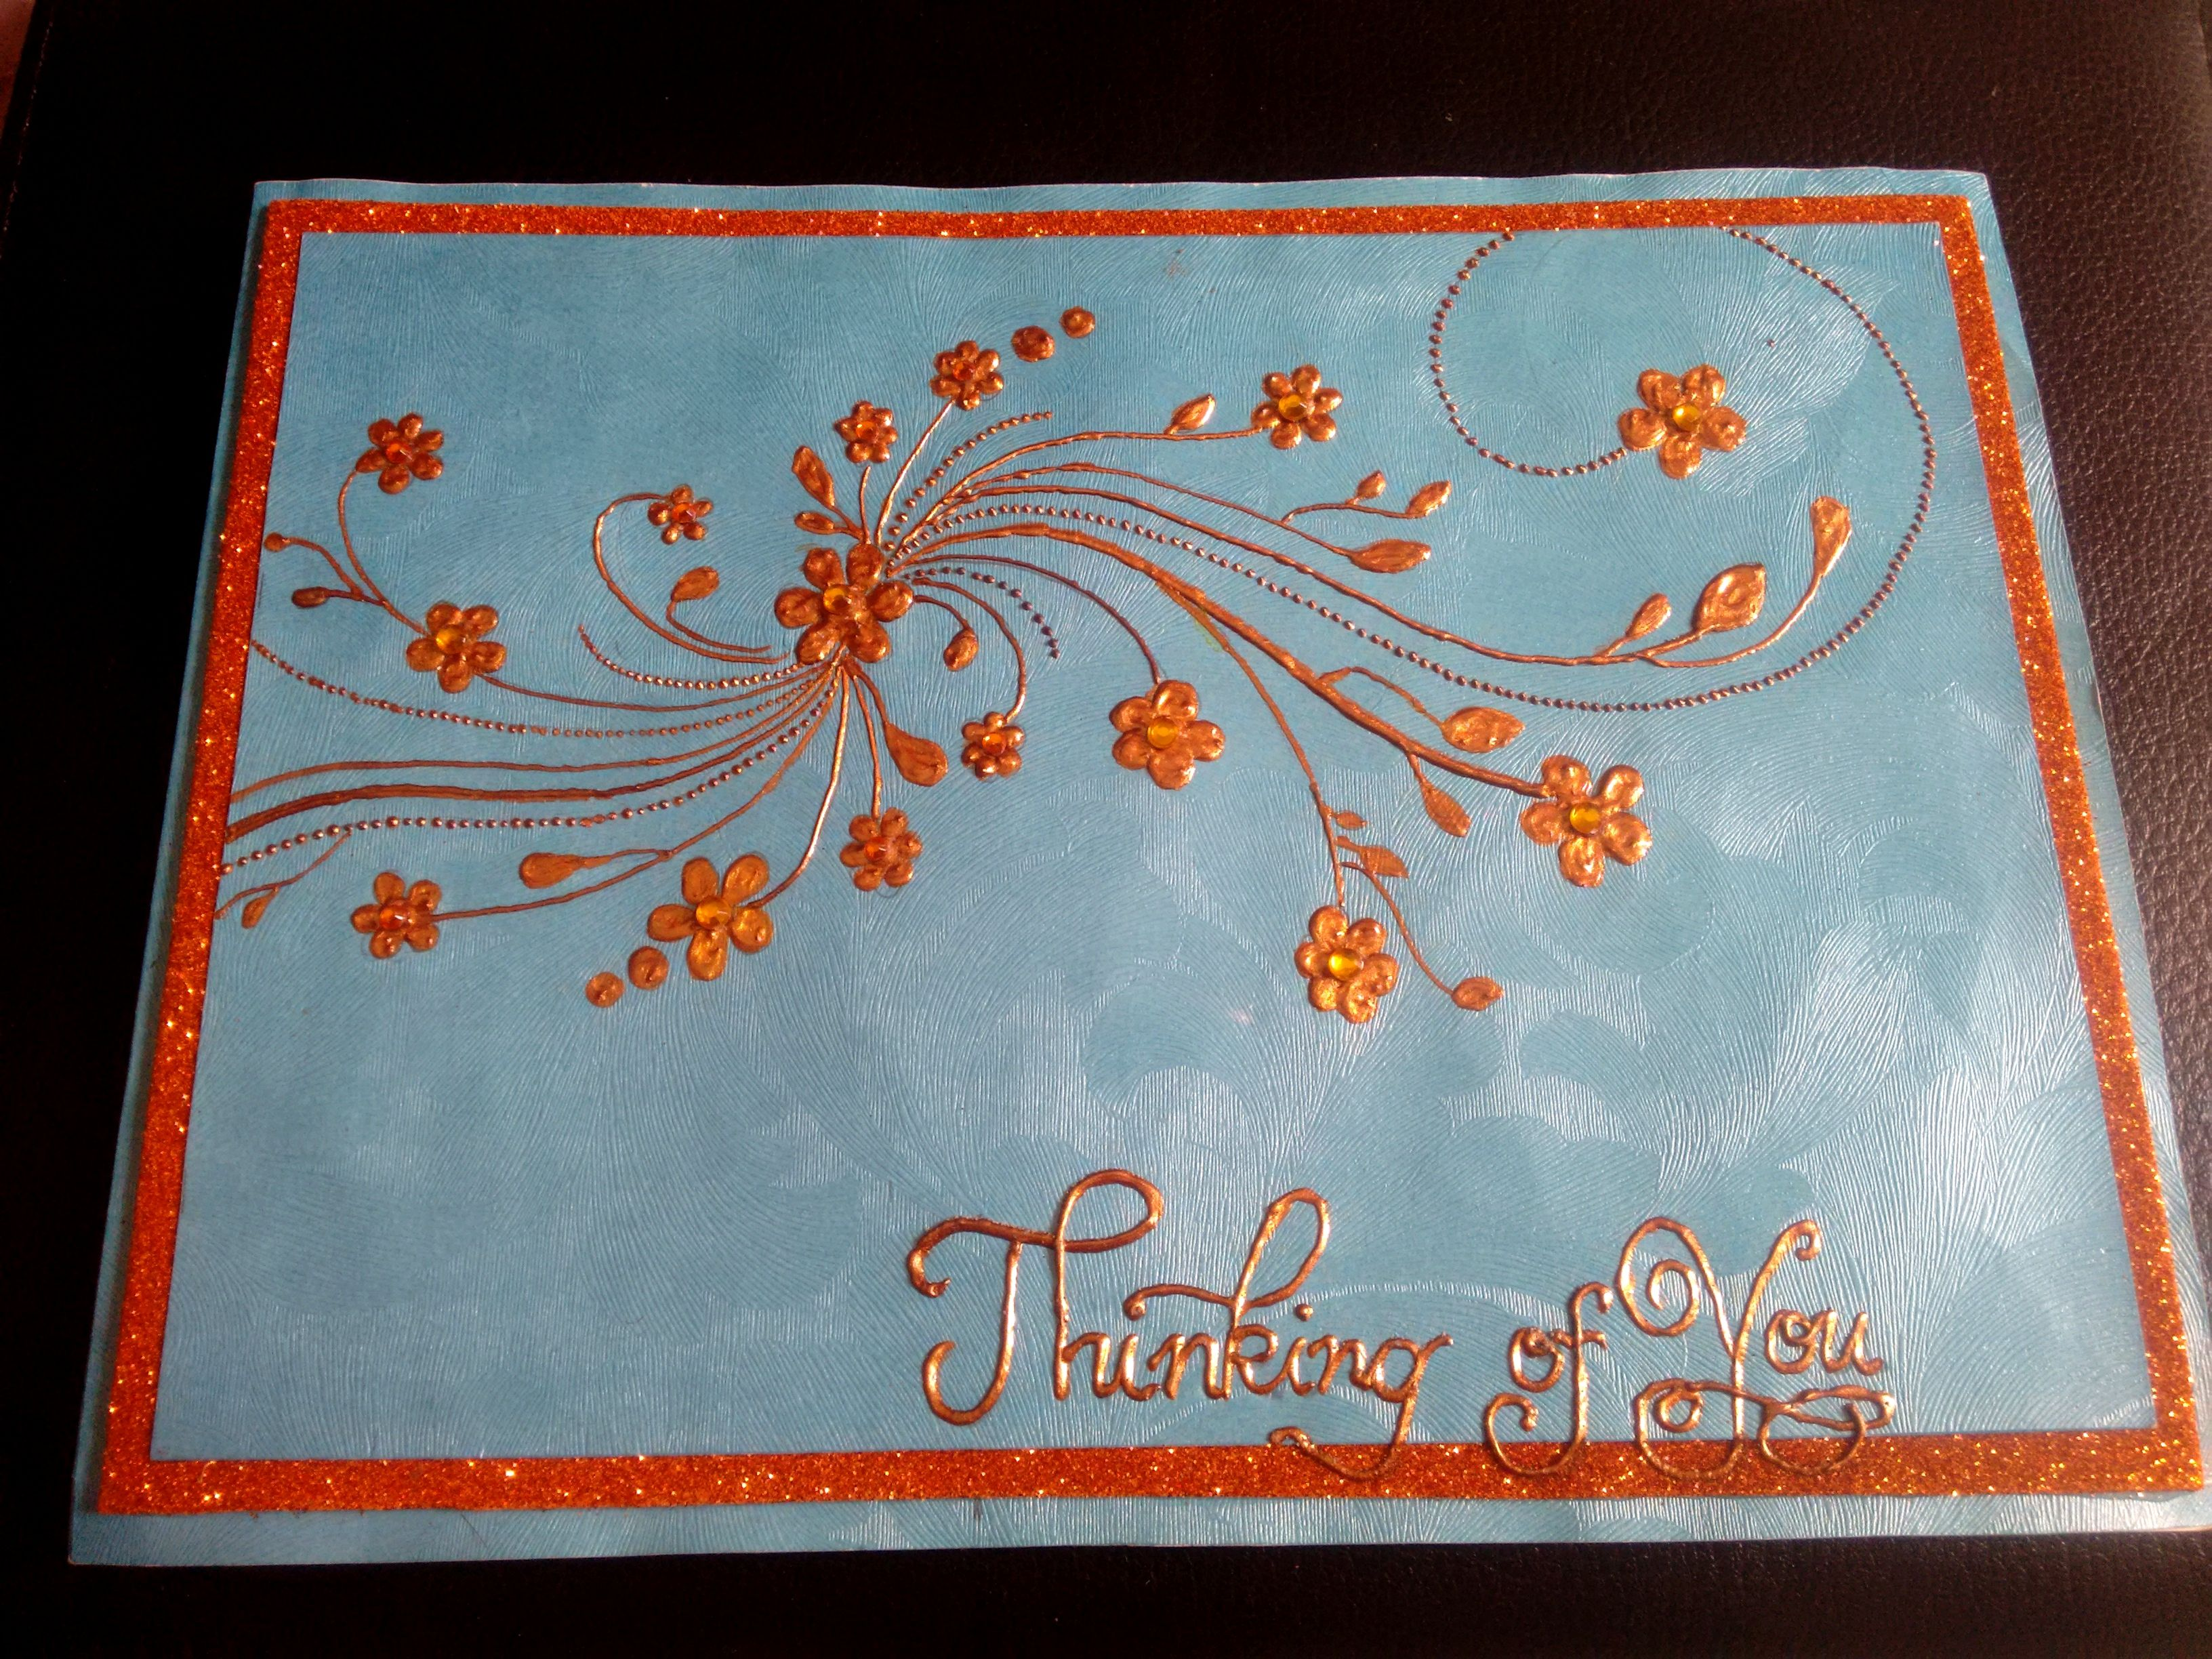 'Thinking about you' golden handmade card